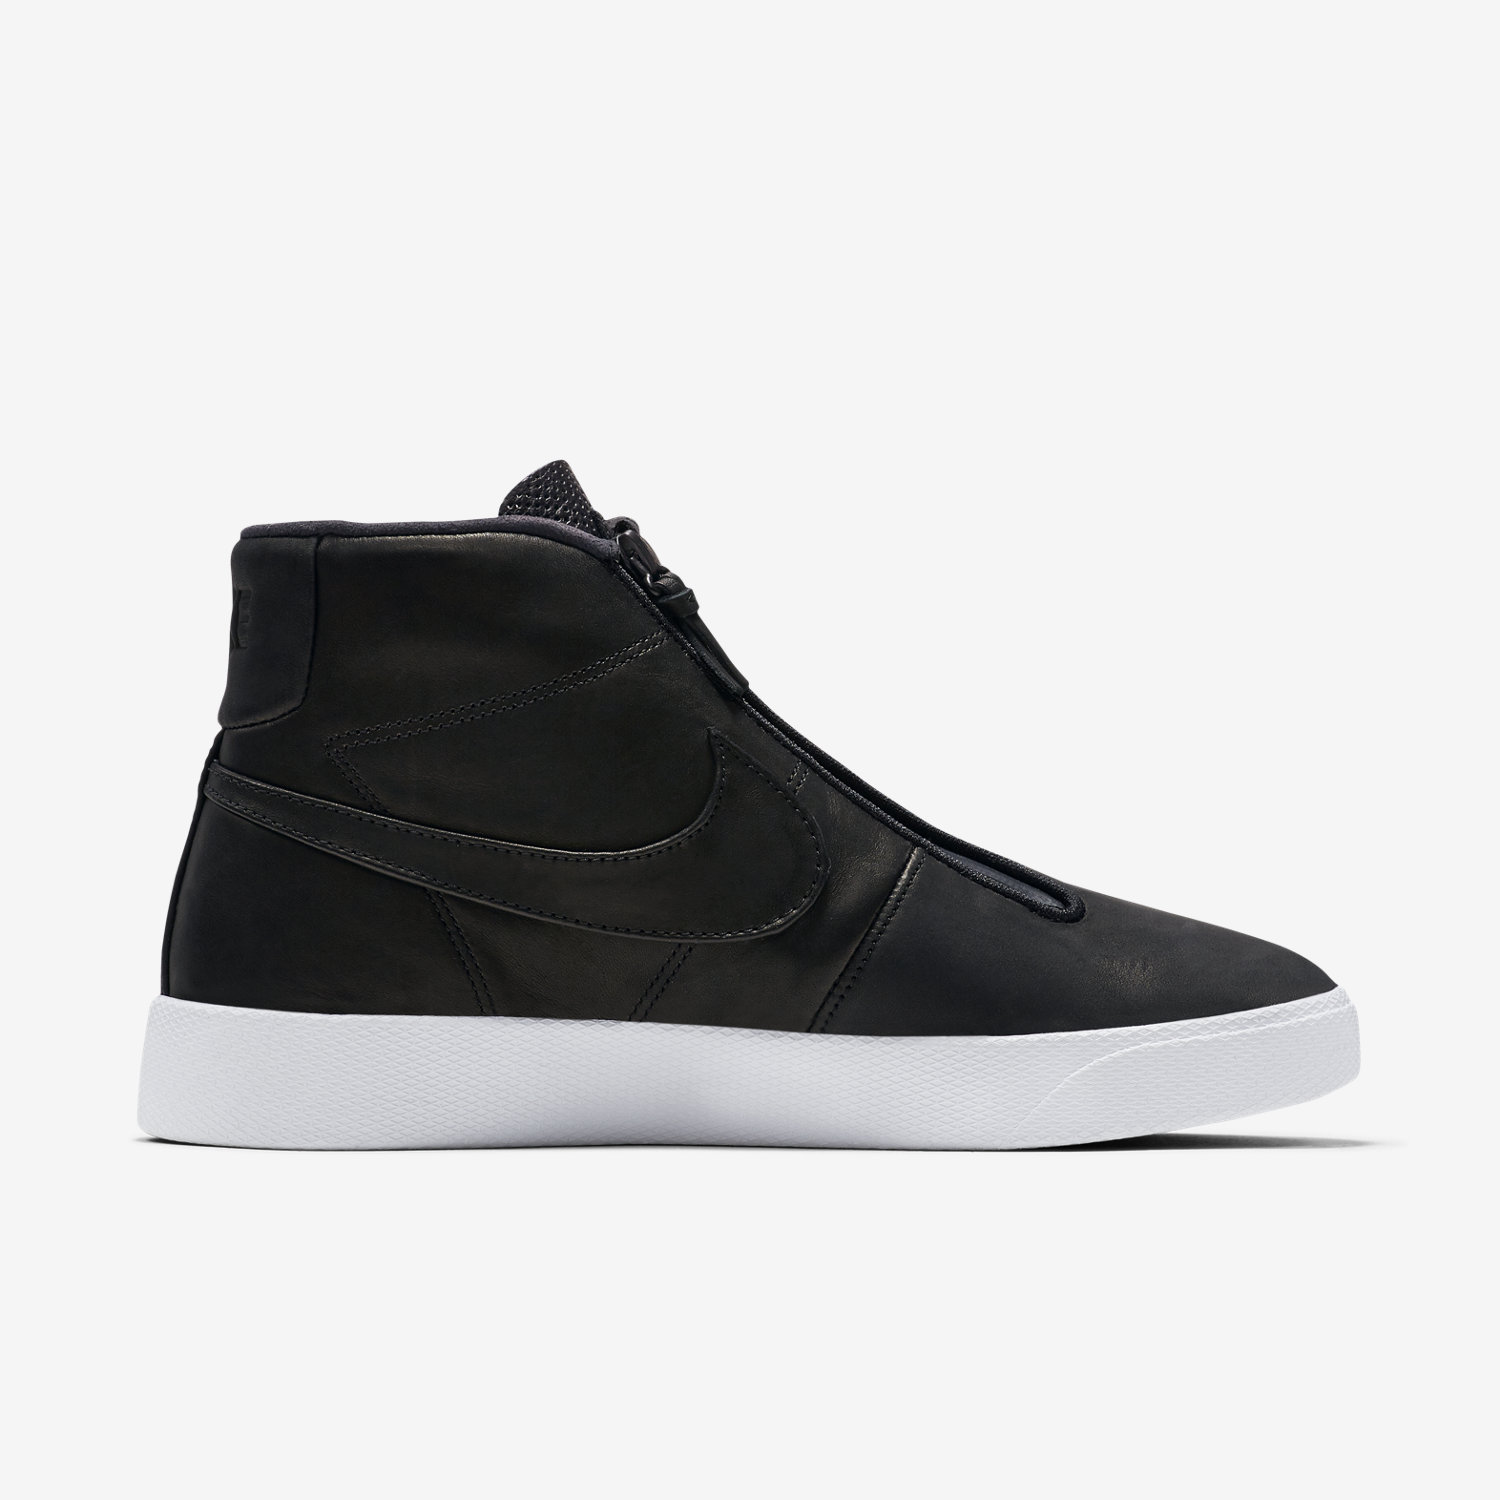 nike Advanced Nike Advanced Blazer nike Blazer Advanced Advanced Nike eW2HIDYE9